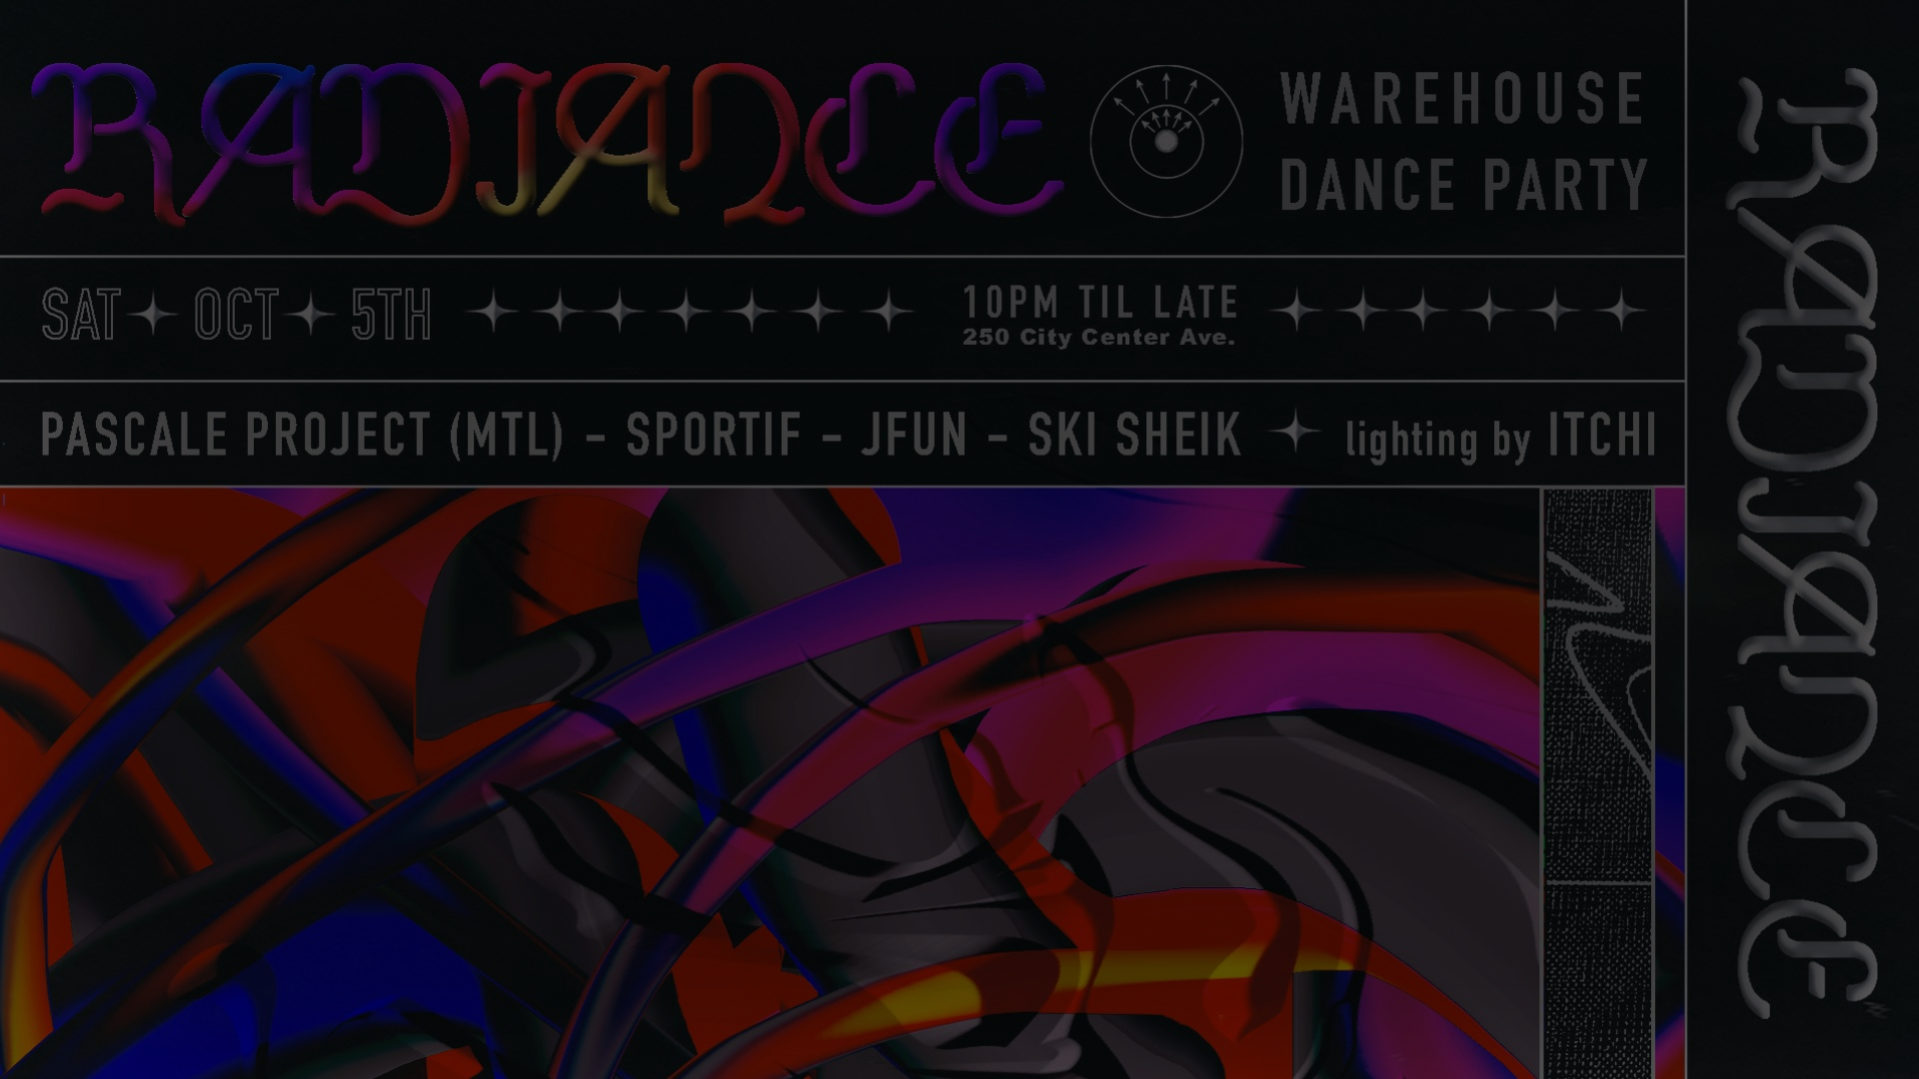 Radiance-Warehouse-Dance-Party (1)